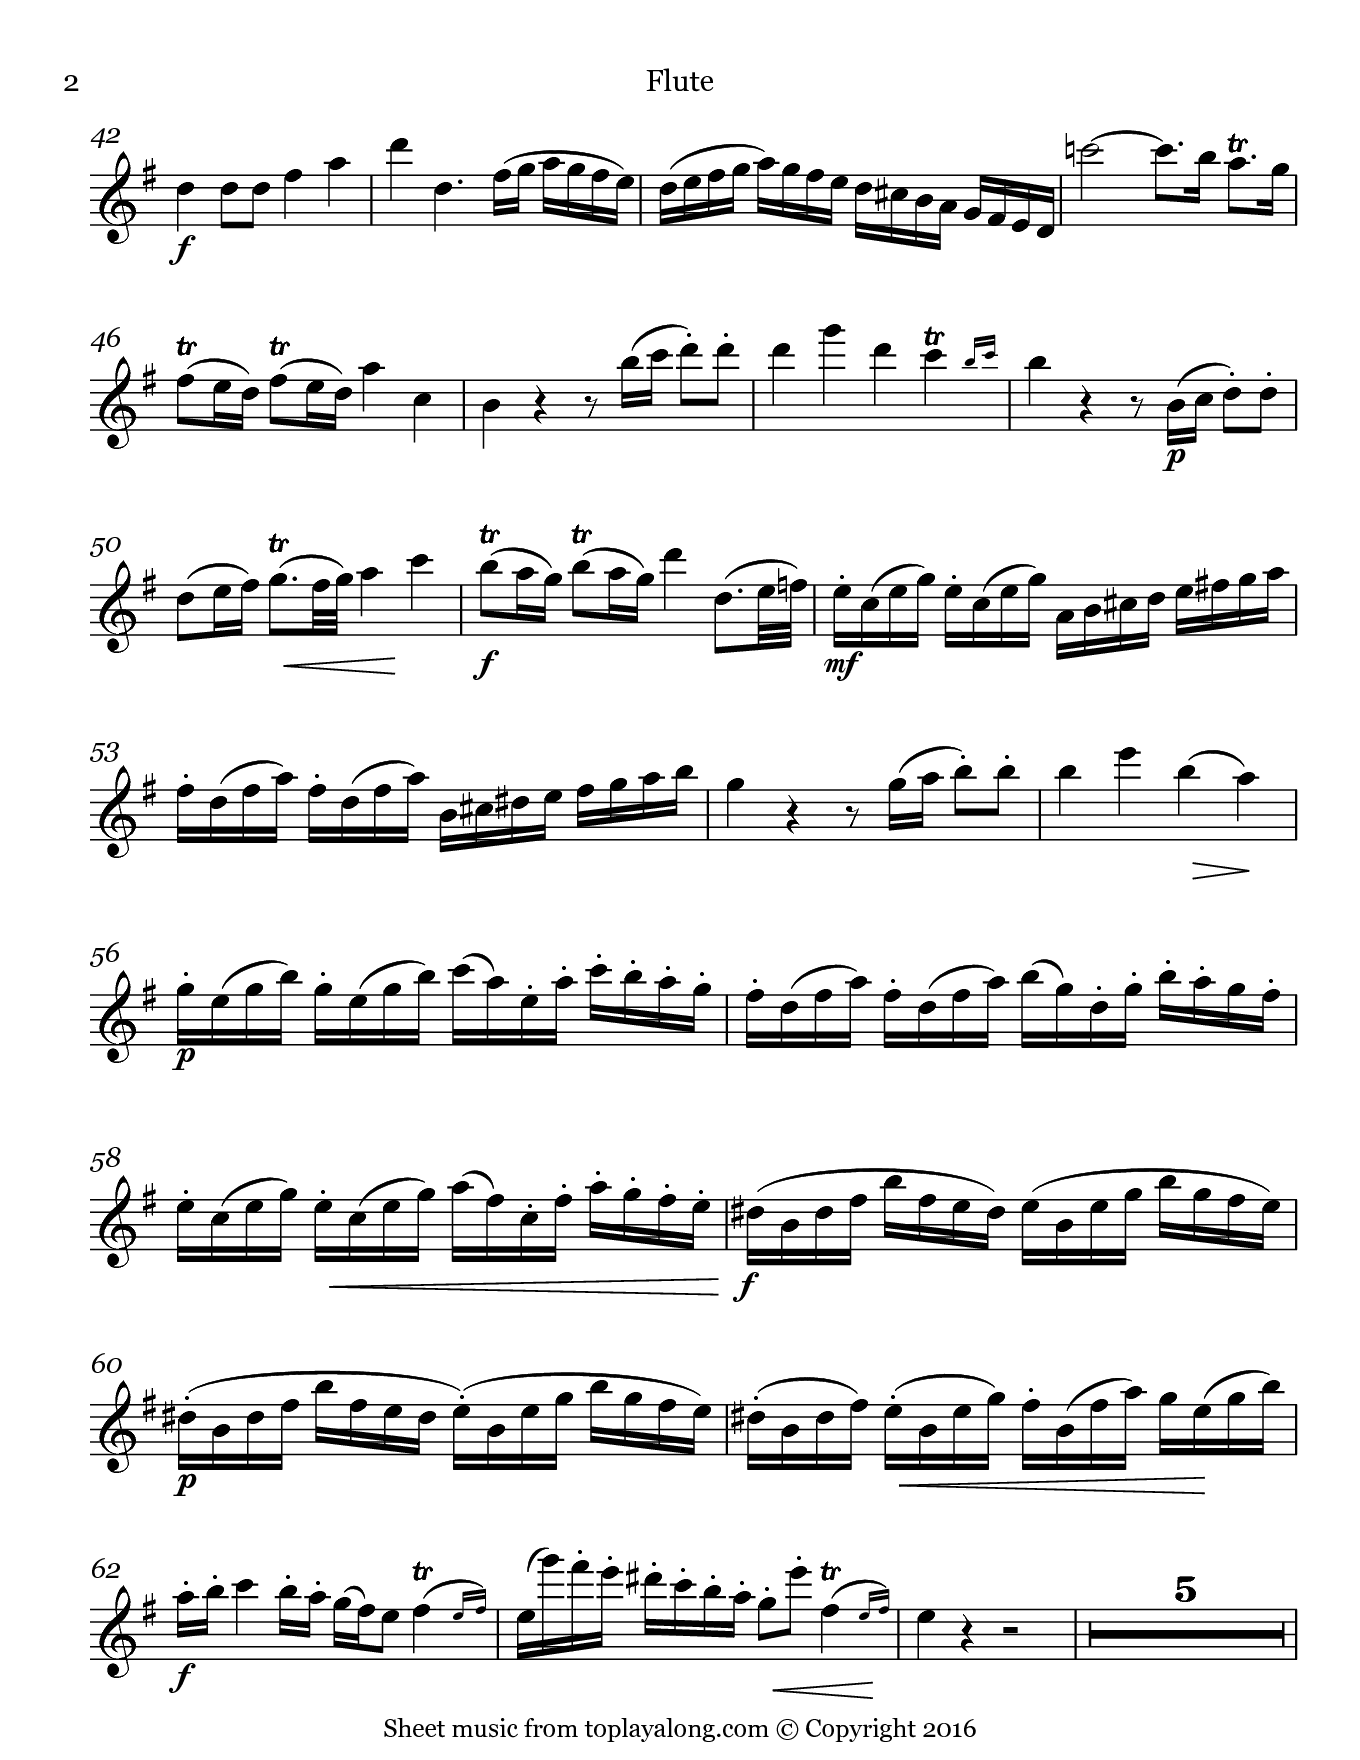 Allegro from Flute Concerto in G Major by Quantz. Sheet music for Flute, page 2.